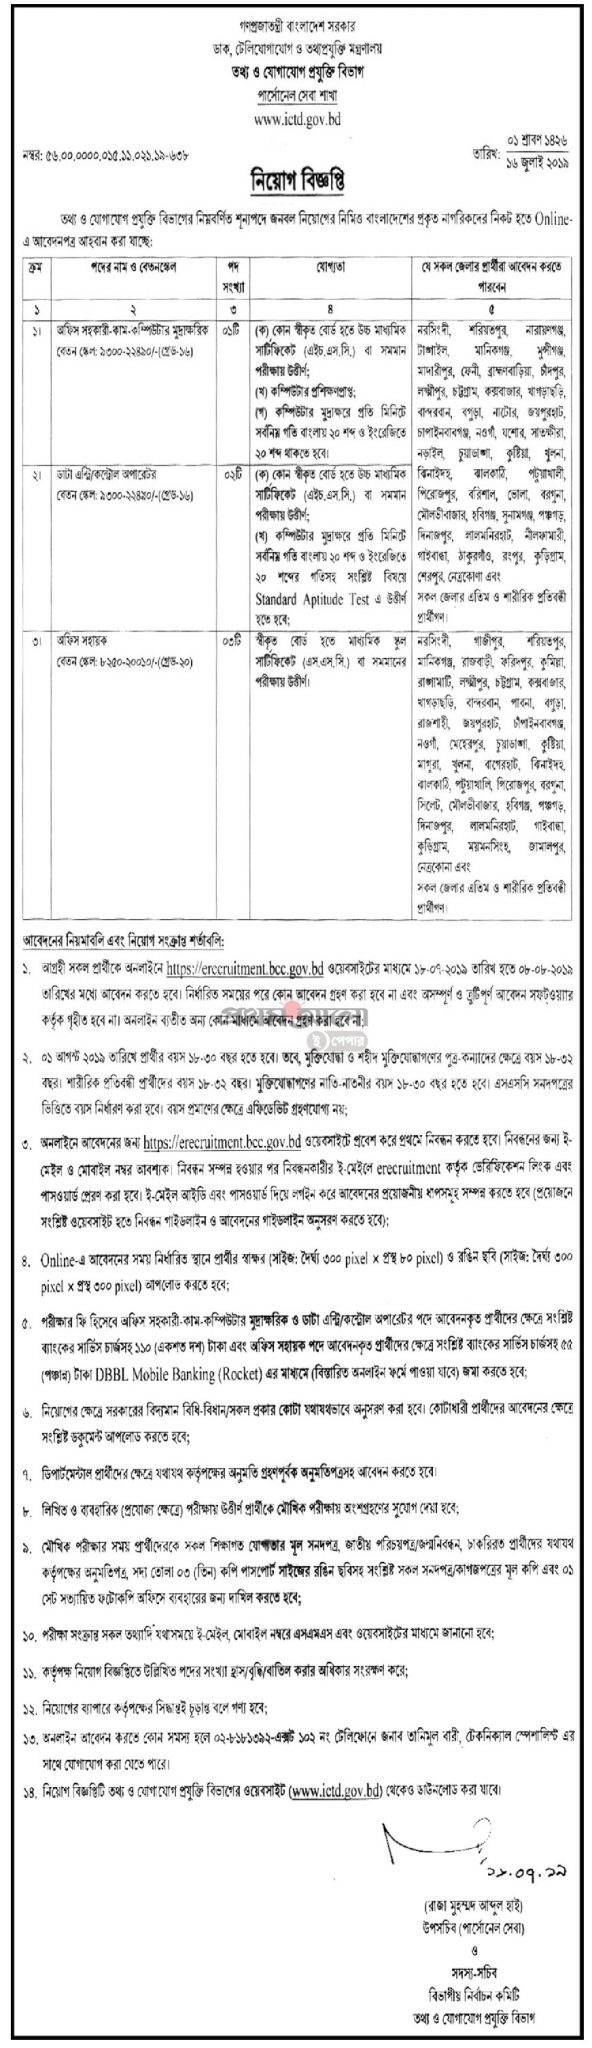 Ministry Of Information And Communication Technology Job Circular 2019